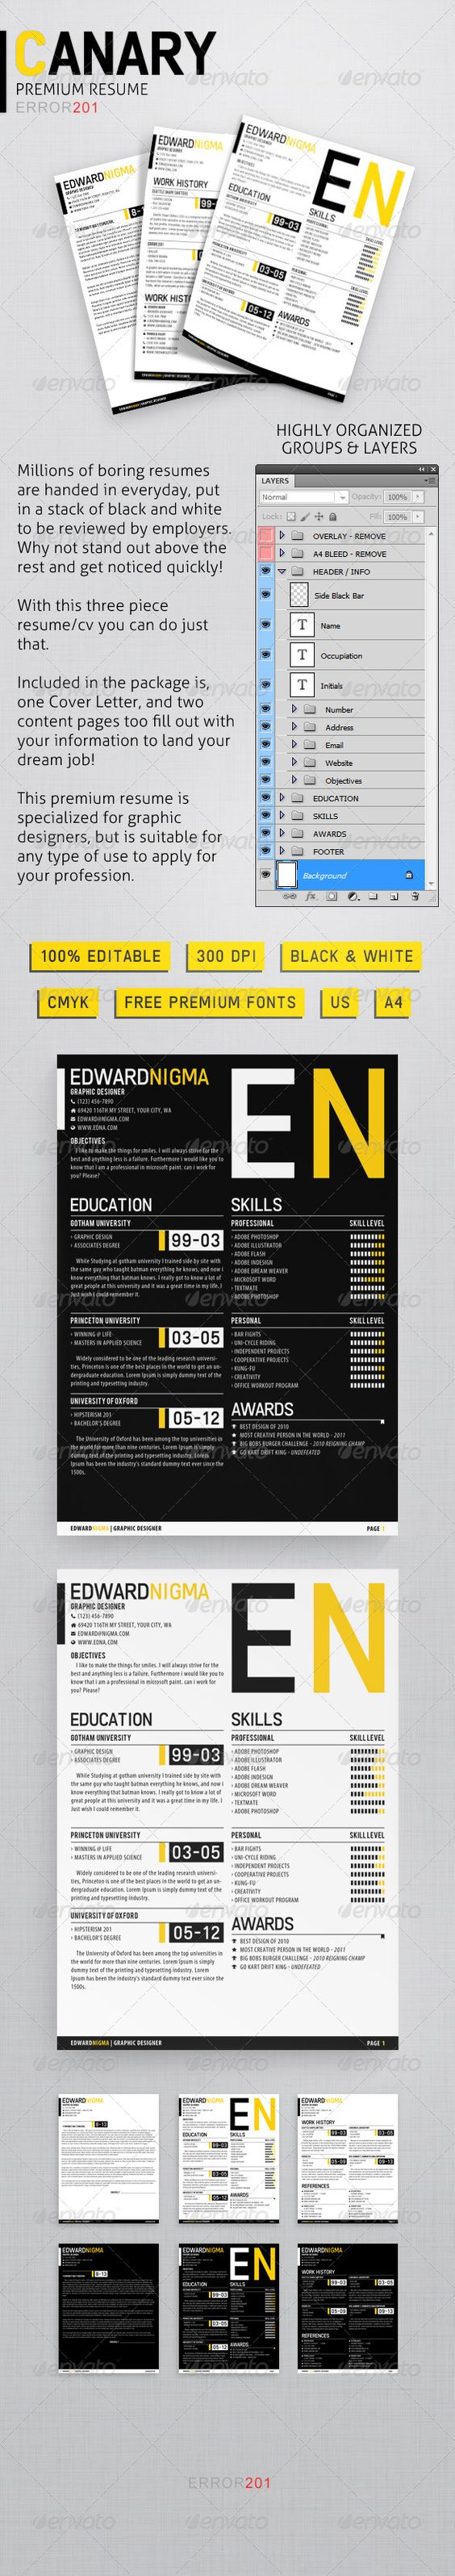 canary premium resume classy fonts and timeline canary premium resume love the layout of this one really clean and